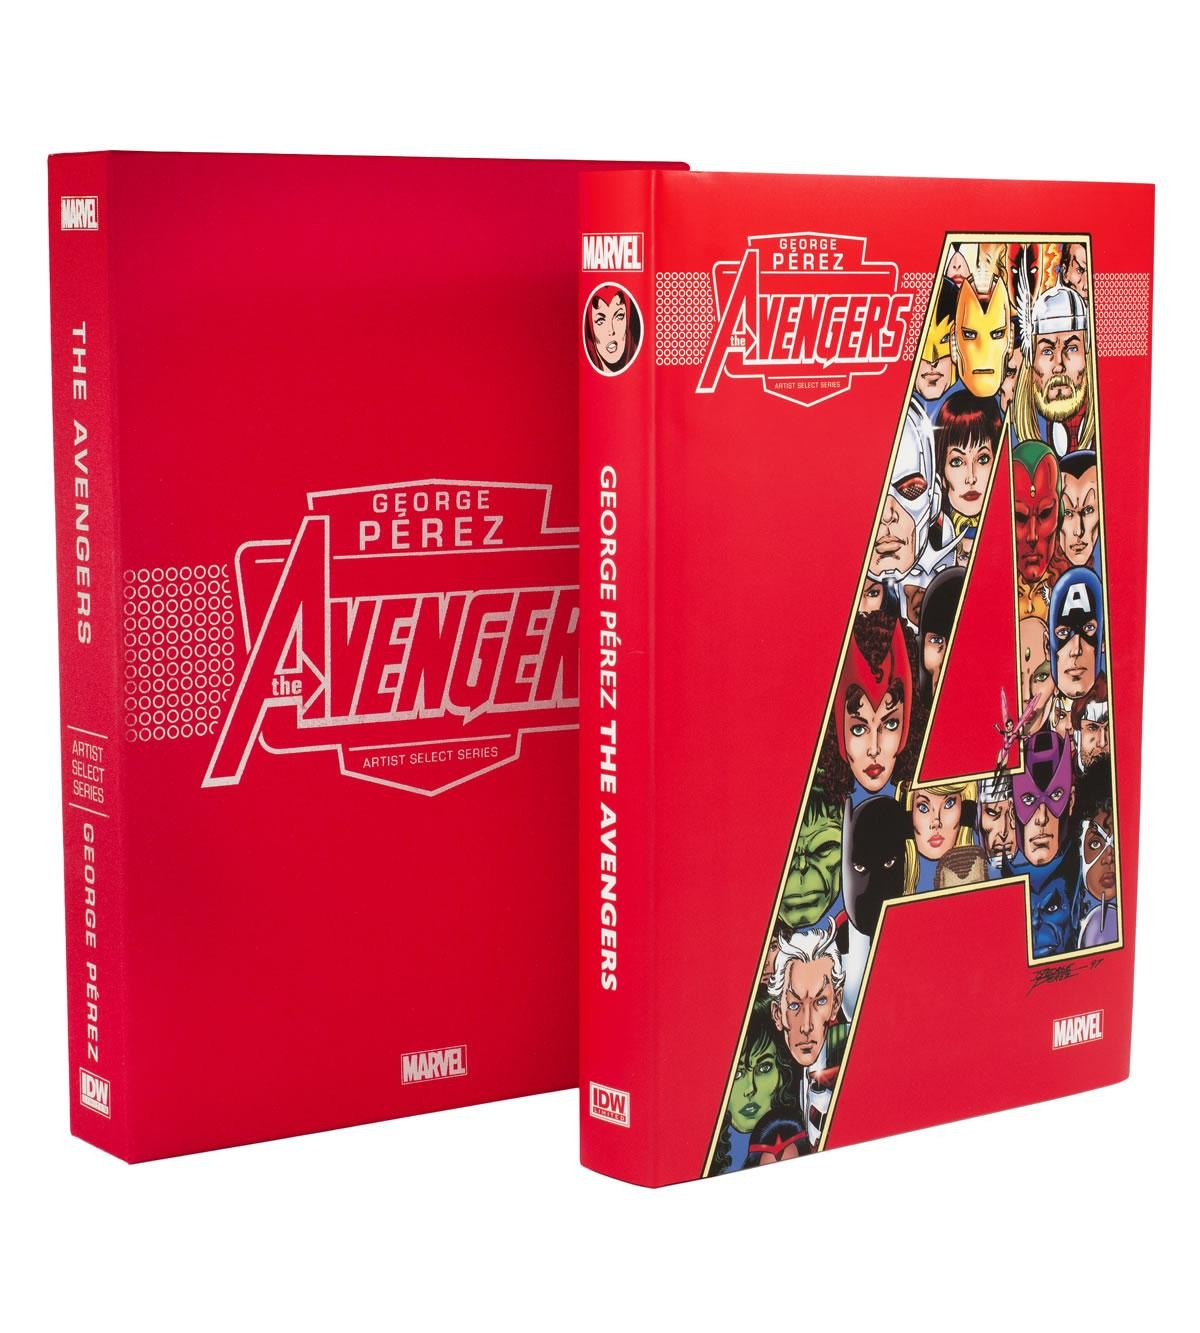 2016 Marvel George Perez The AVENGERS Artist Select Series Hardcover Brand New